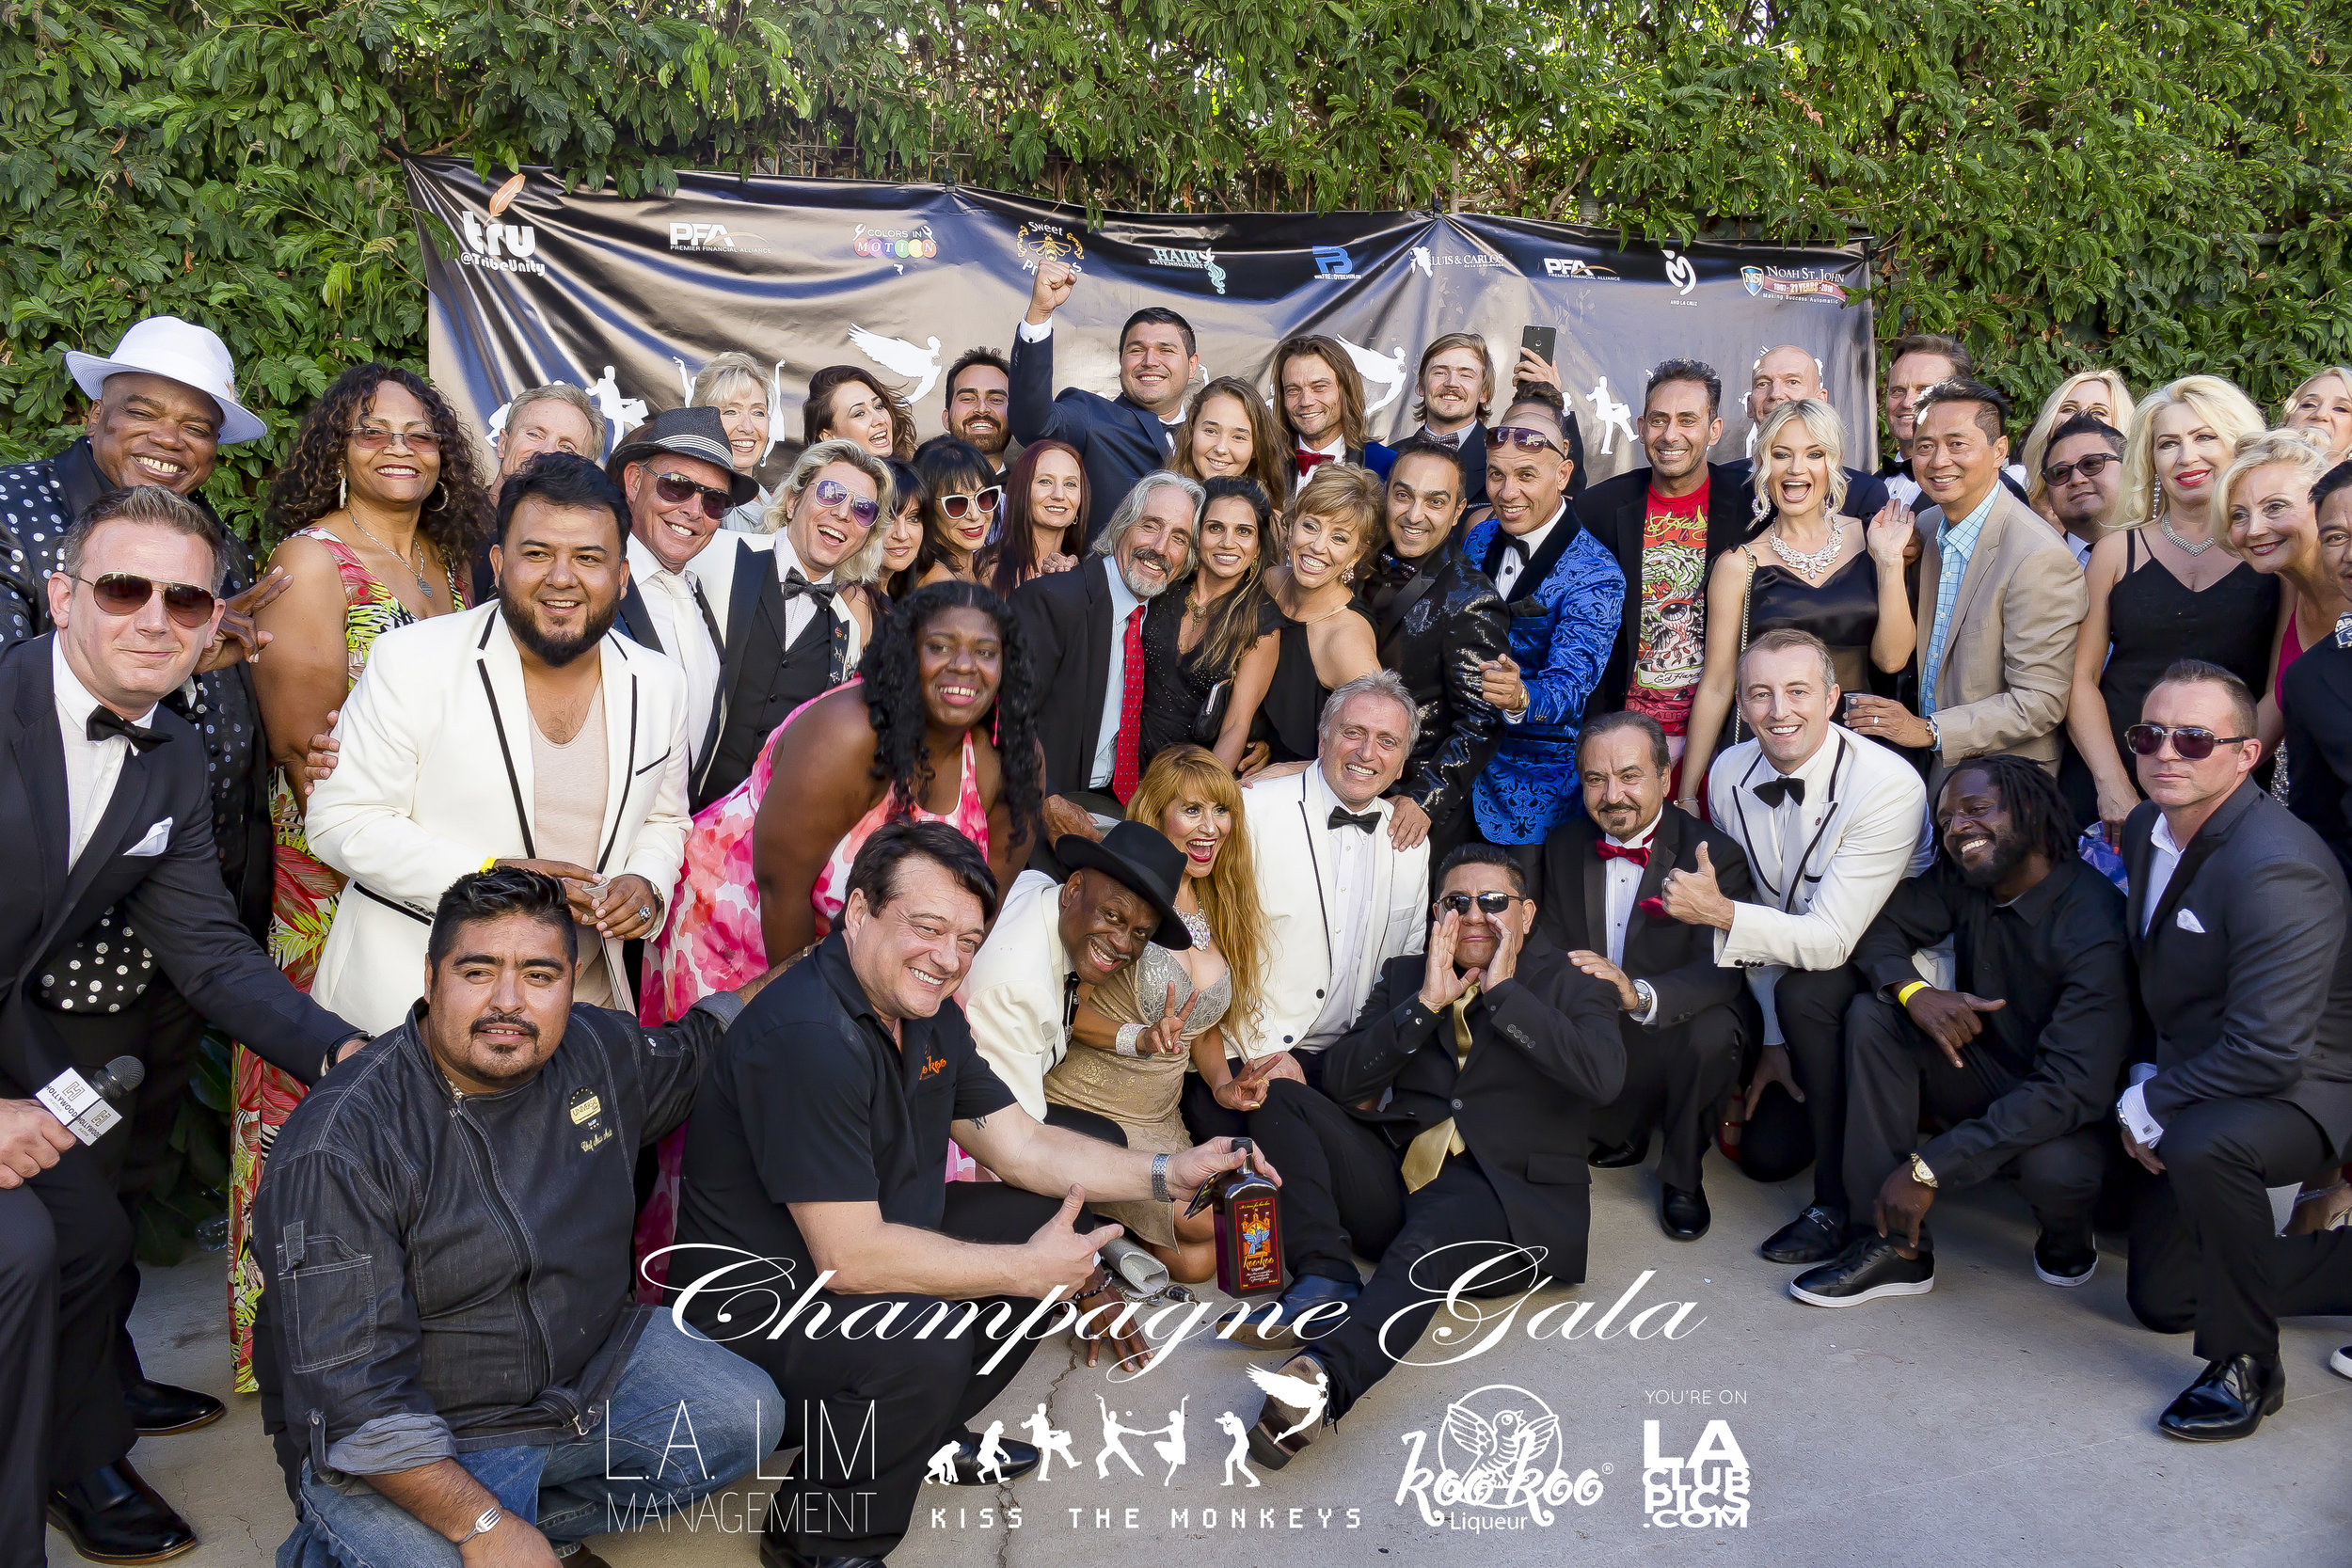 Kiss The Monkeys - Champagne Gala - 07-21-18_62.jpg